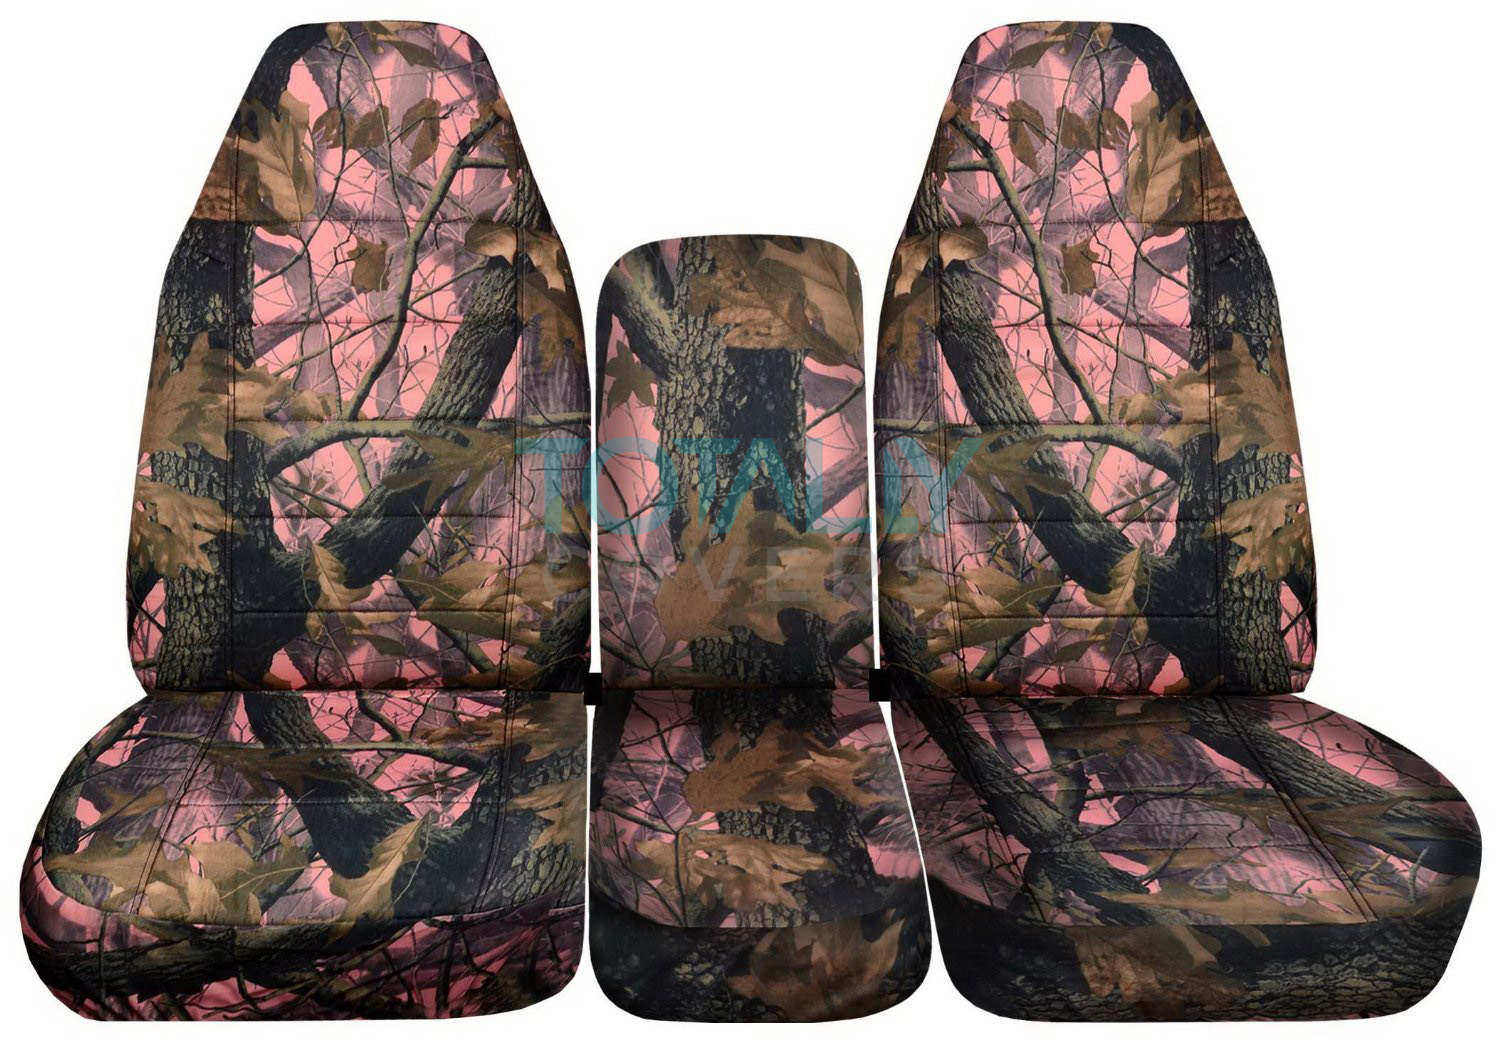 Groovy Details About 1993 1998 Ford F Series F 150 250 350 40 20 40 Camo Truck Seat Covers W Console Lamtechconsult Wood Chair Design Ideas Lamtechconsultcom